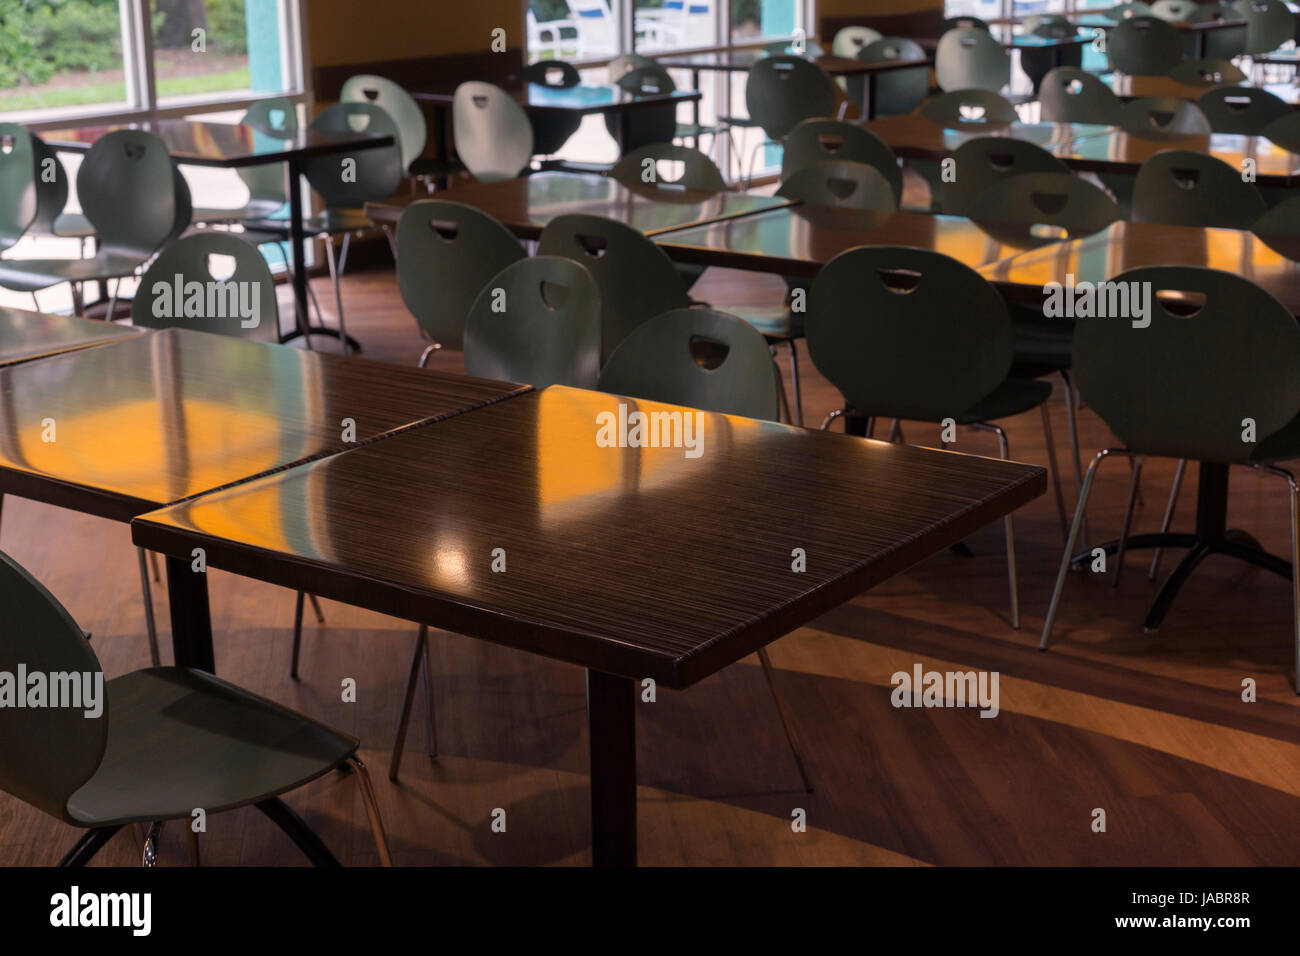 Clean cafeteria tables - Cafeteria Tables And Chairs Clean In A Row